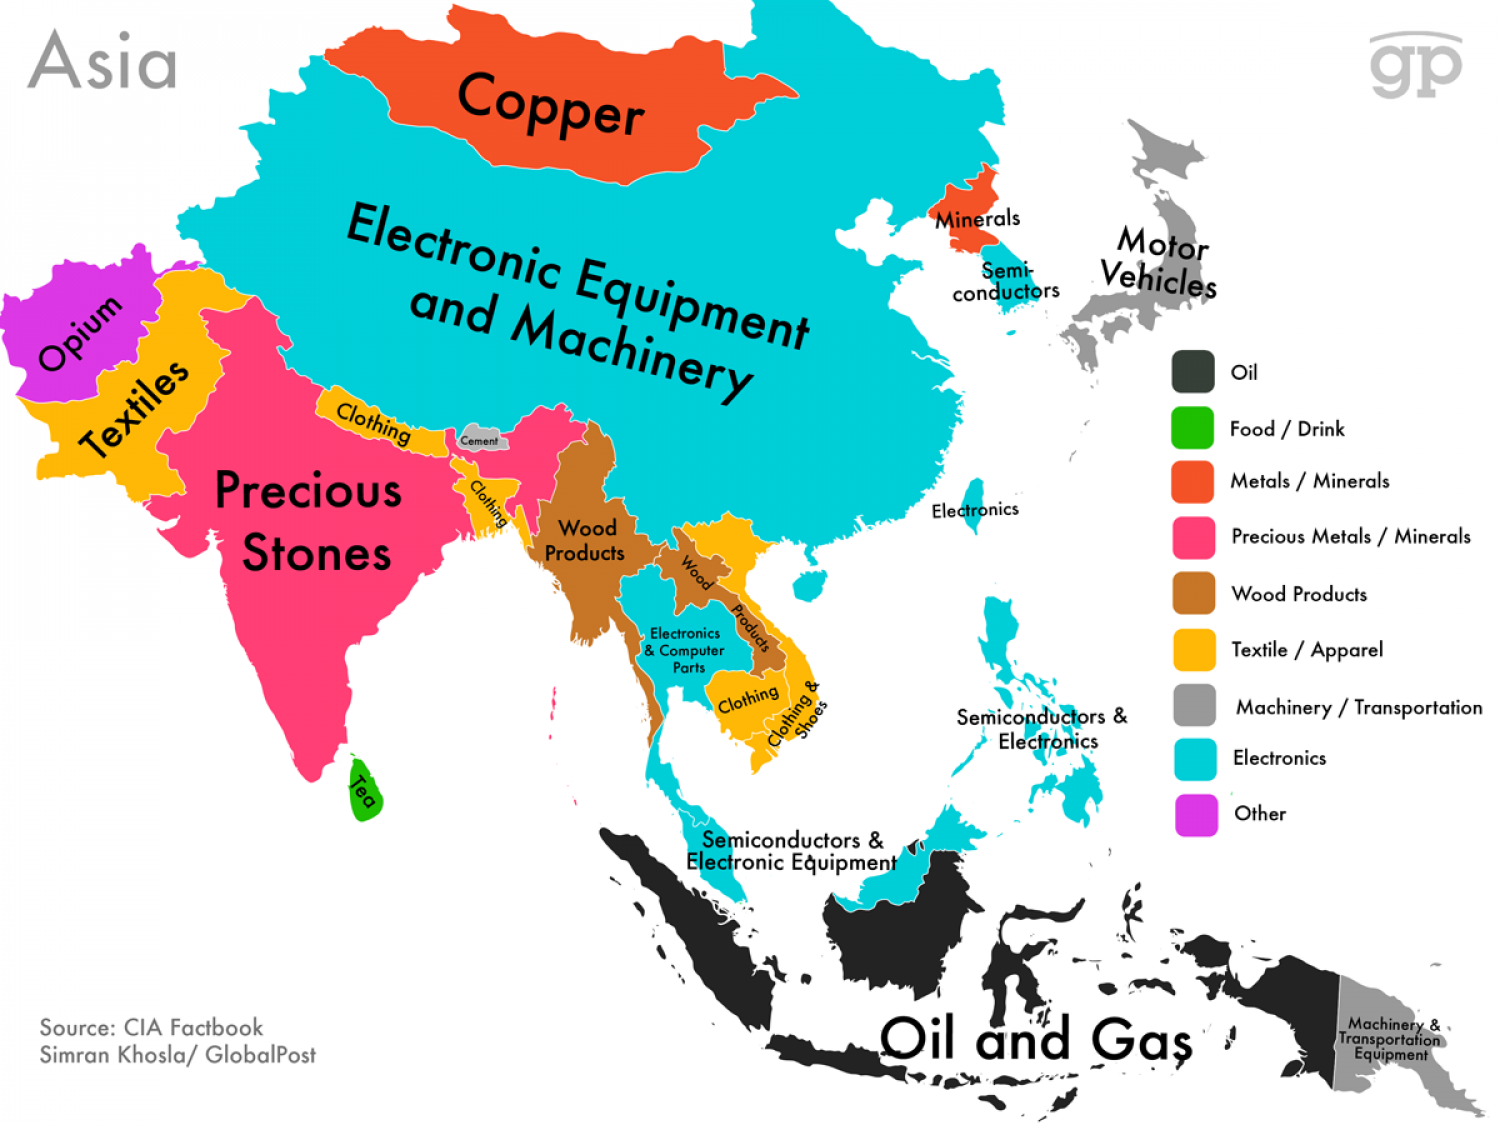 World Commodities Map: Asia Infographic